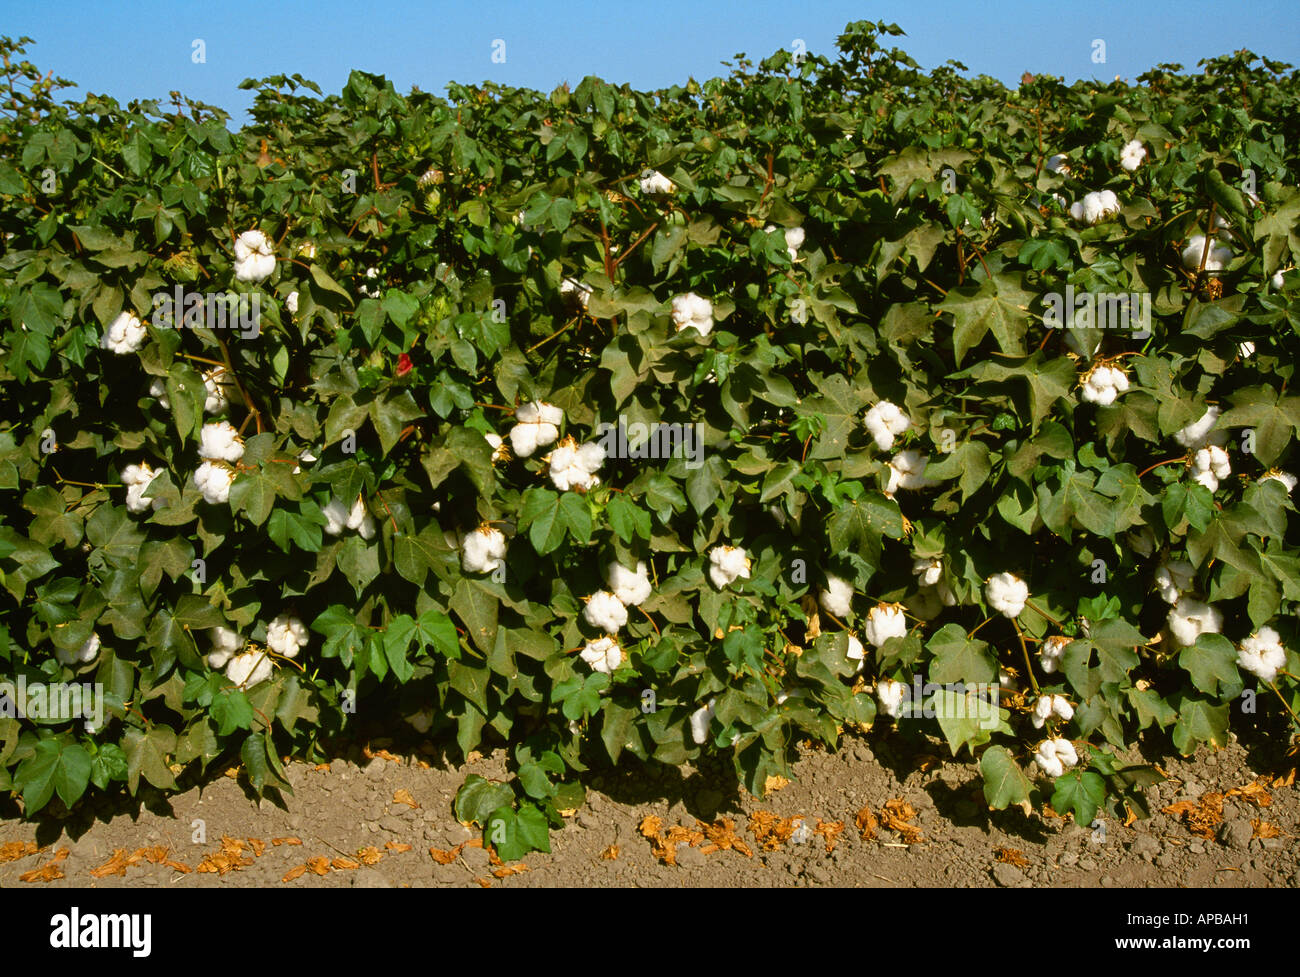 Side view of a row of mature cotton plants in late summer with